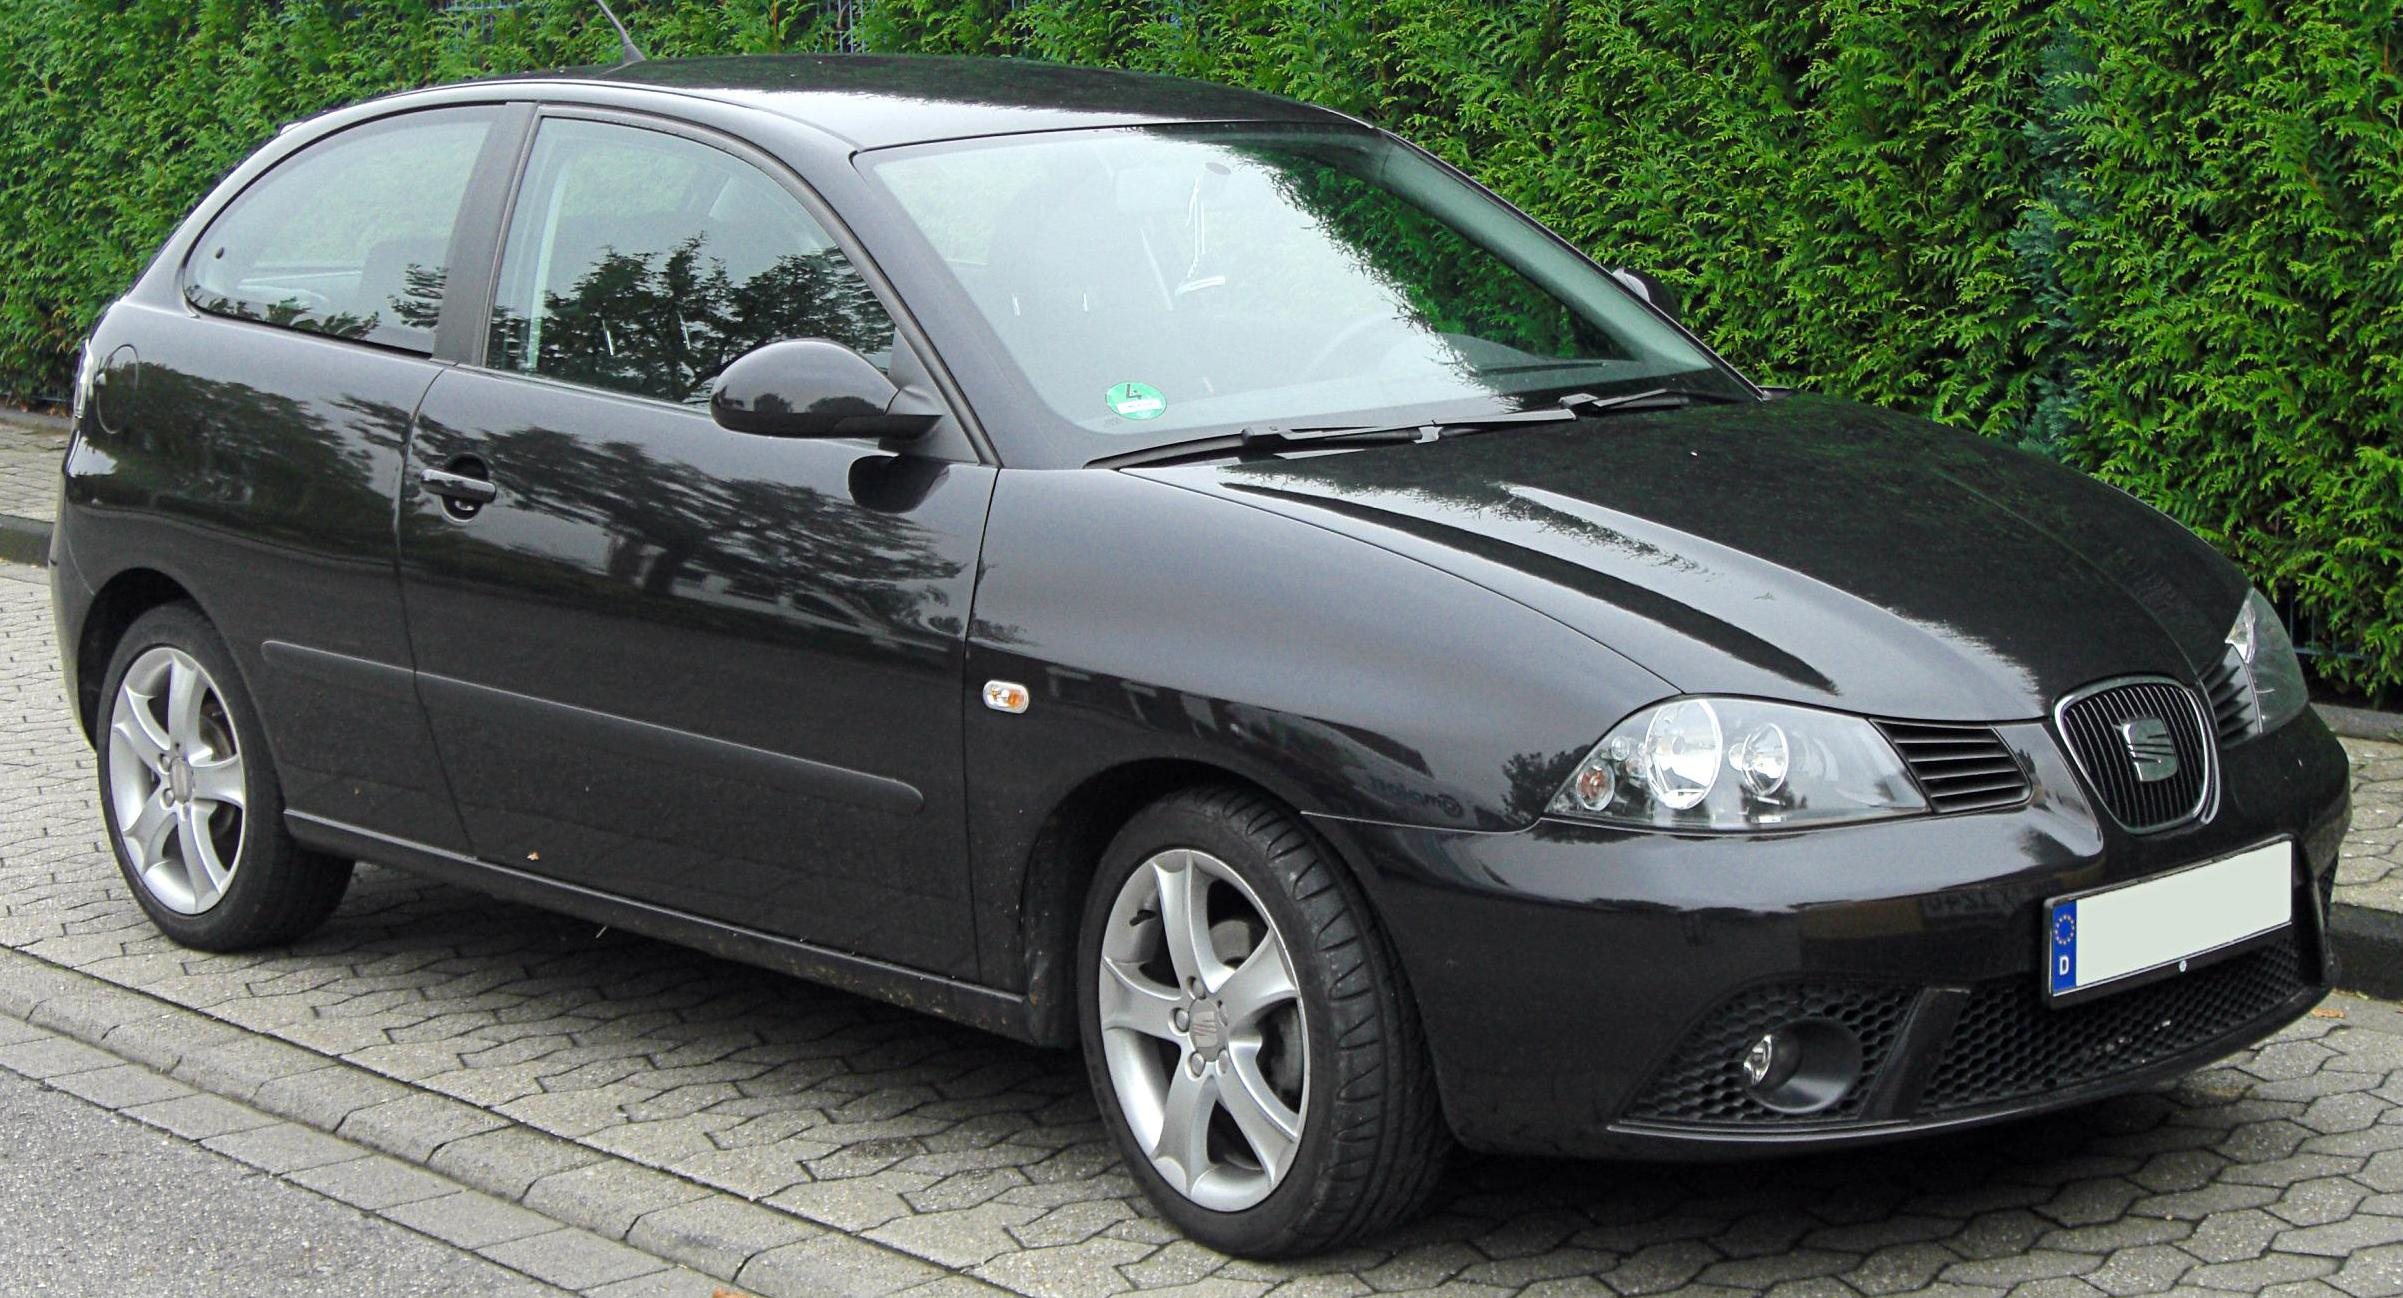 2002 seat ibiza partsopen. Black Bedroom Furniture Sets. Home Design Ideas